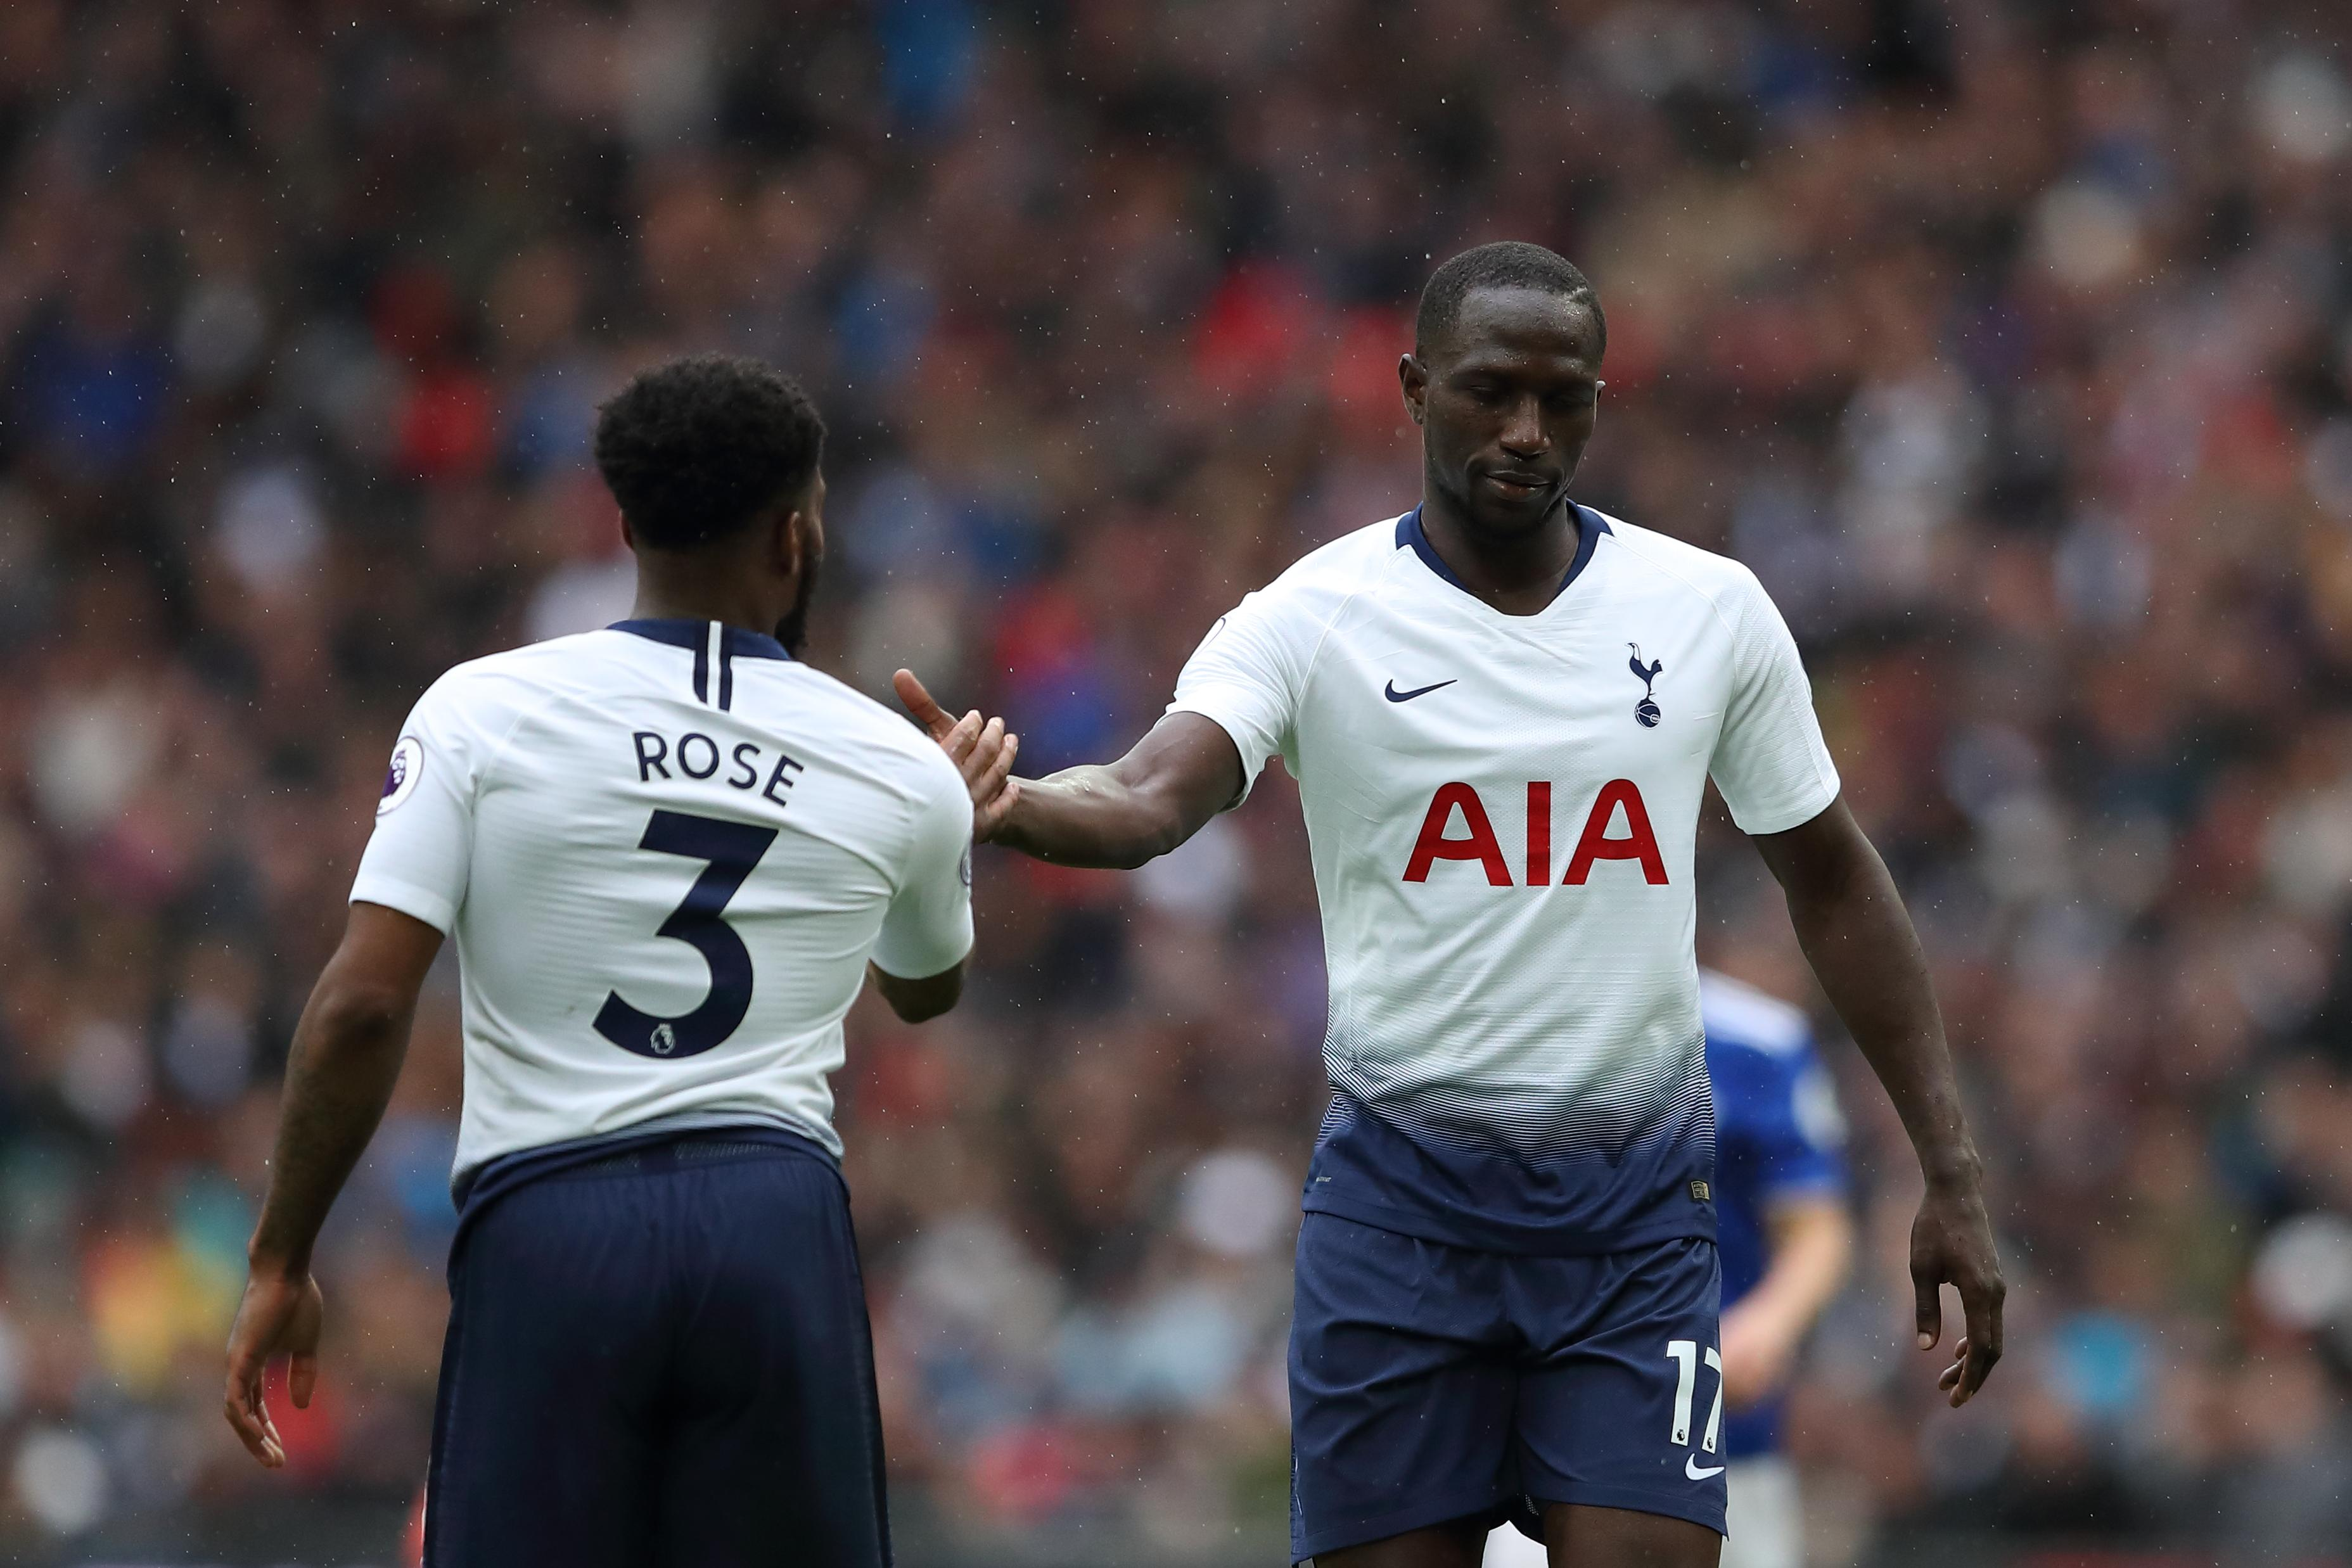 He's become a big part of Spurs' midfield this season